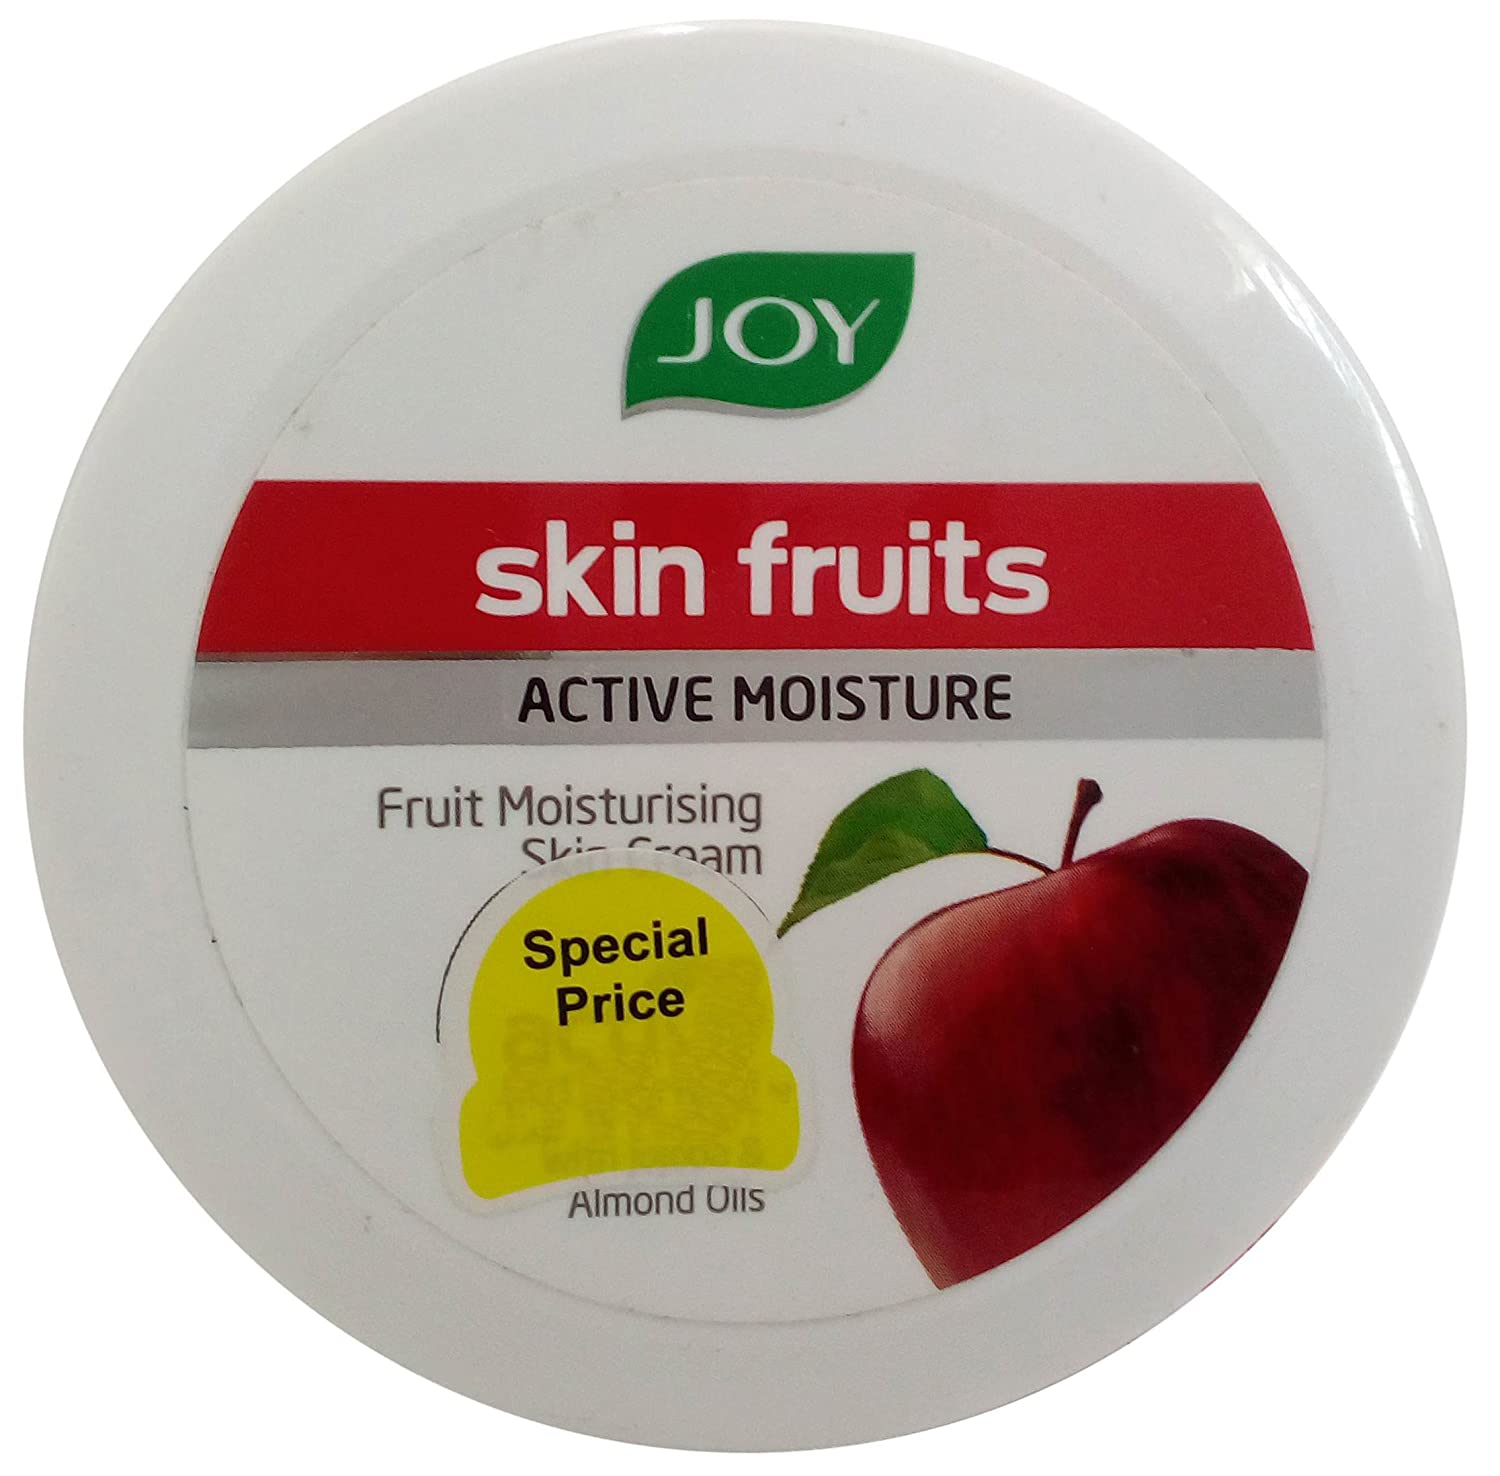 Joy Skin Fruits Active Moisture Fruit Moisturizing Cream